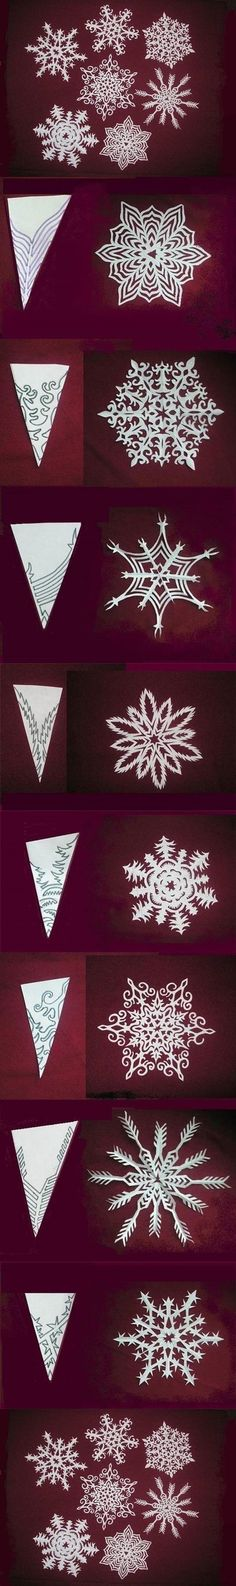 Wonderful DIY Paper Snowflakes With Pattern | WonderfulDIY.com